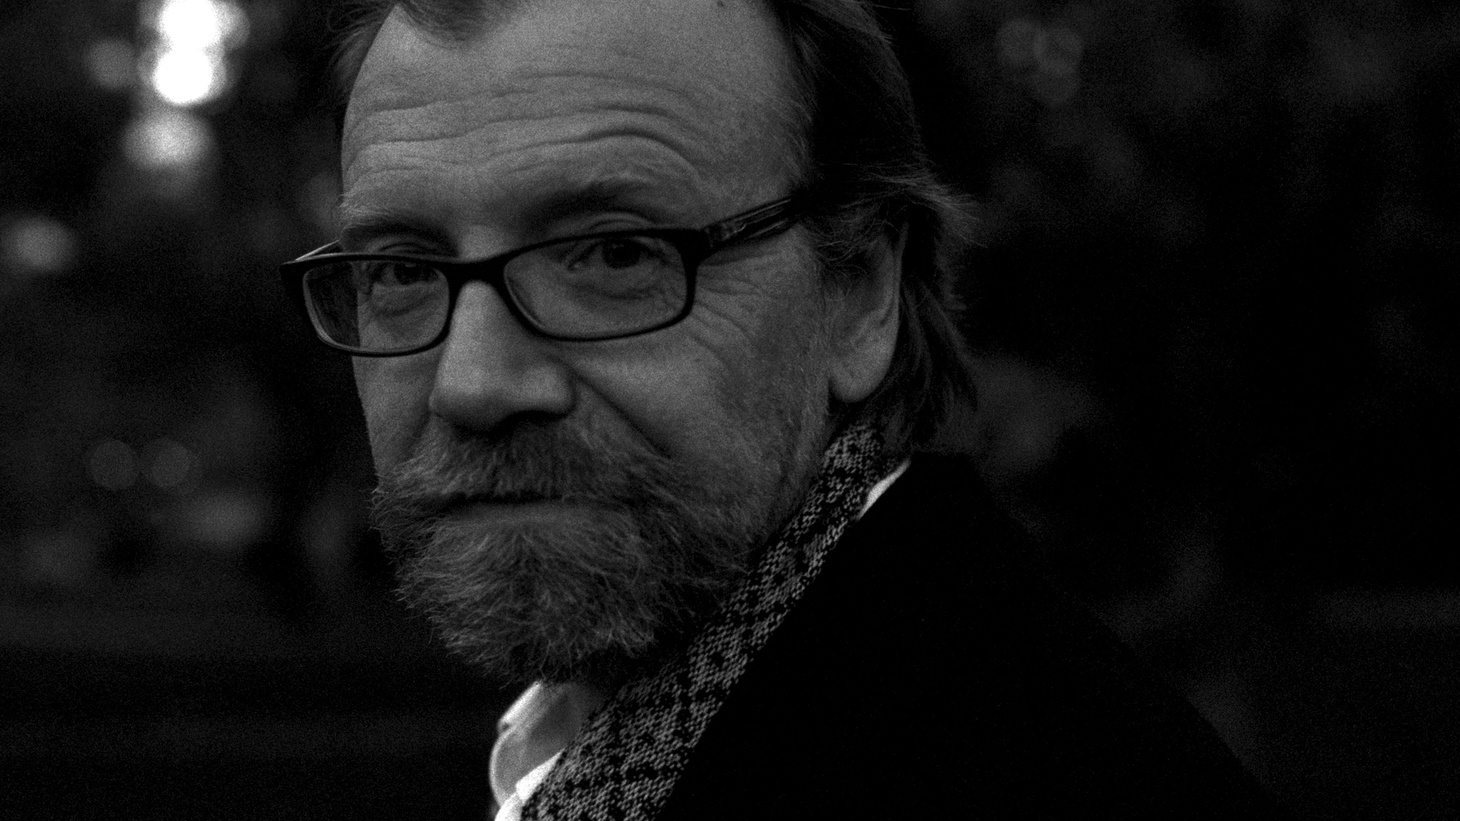 Short story writer George Saunders discusses the use and origin of voices in the reading of his work. CONTAINS ADULT LANGUAGE.